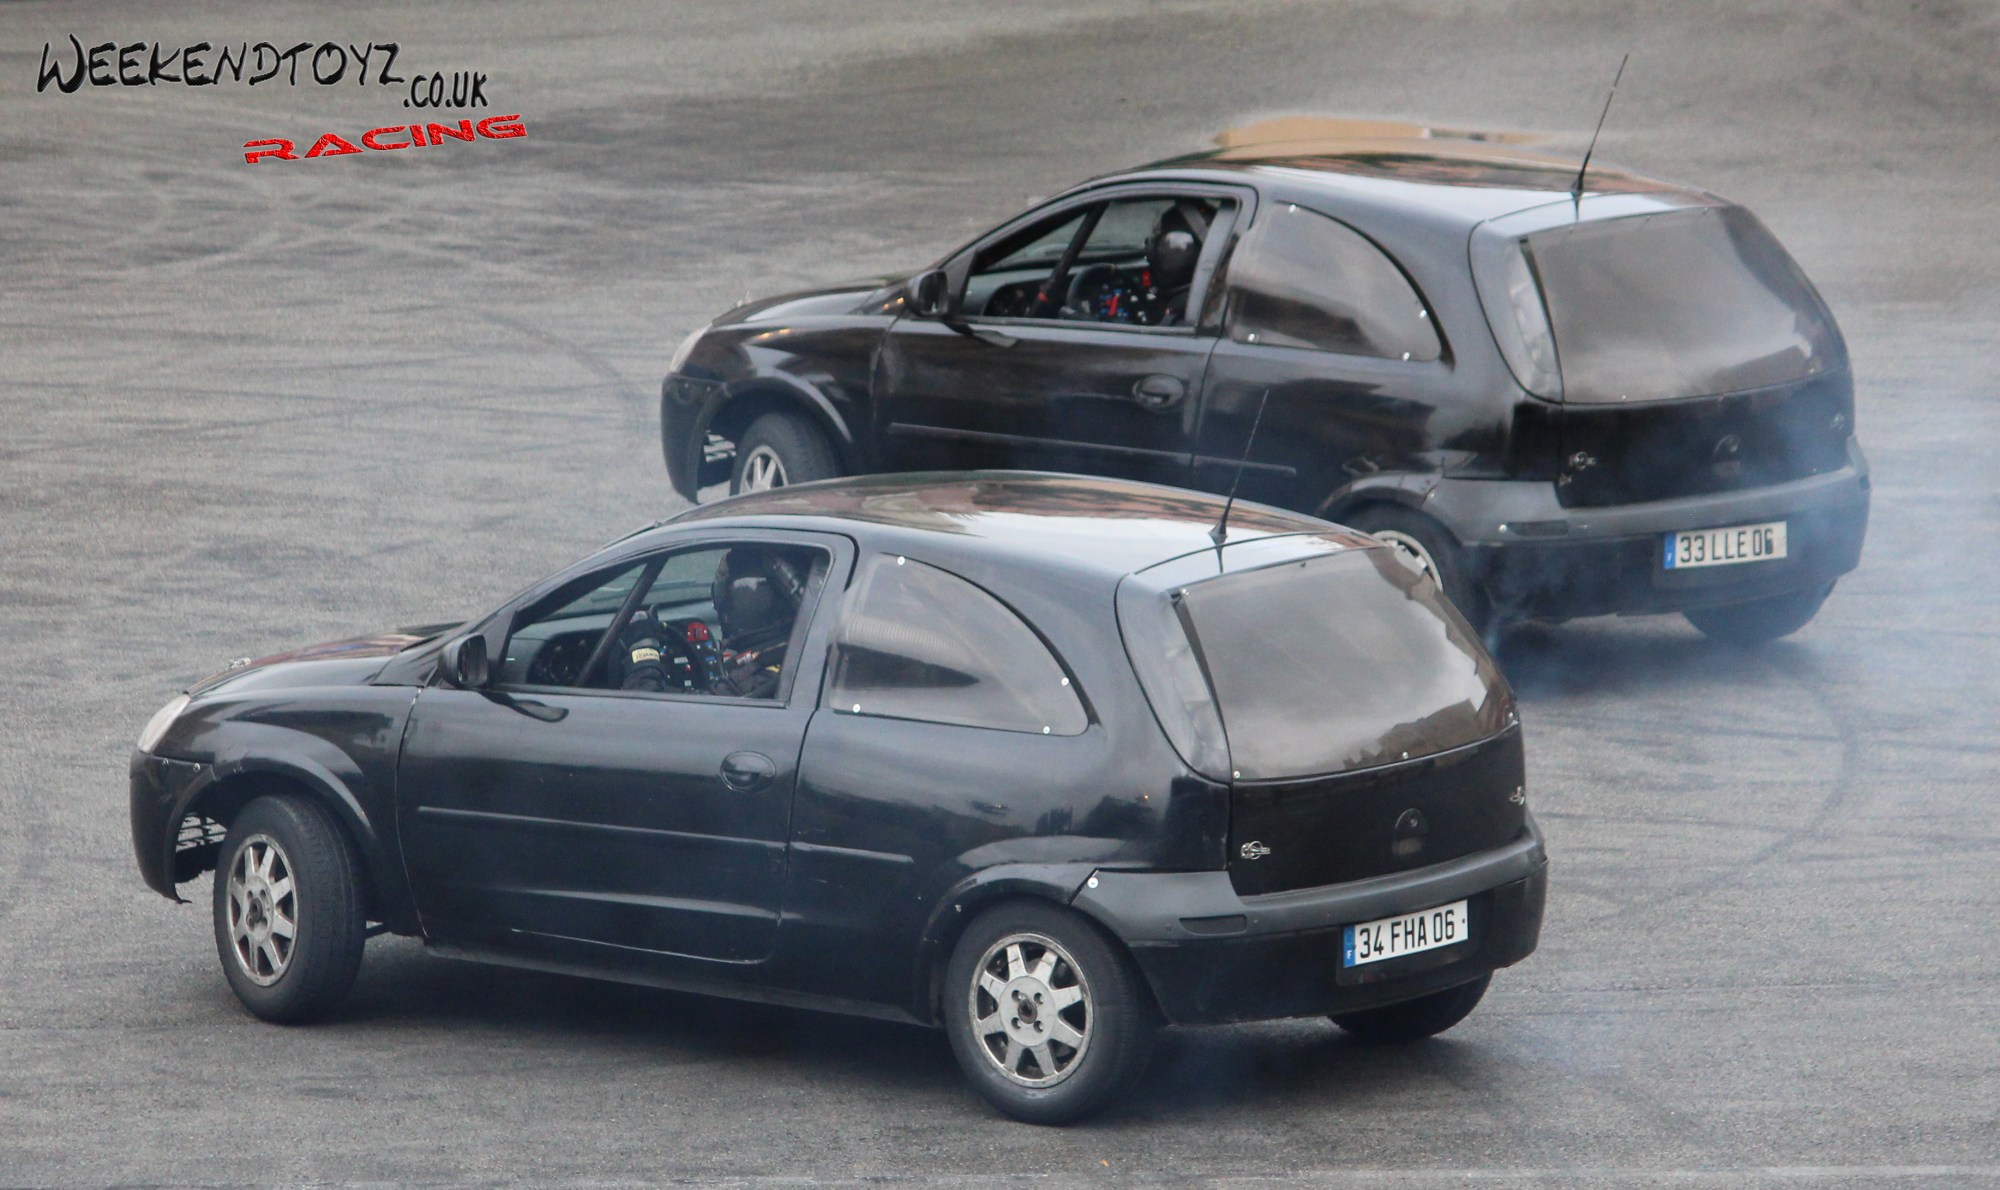 hight resolution of action is a stunt show first performed in 2002 at disneyland paris just 2 years after the introduction of the corsa c from general motors